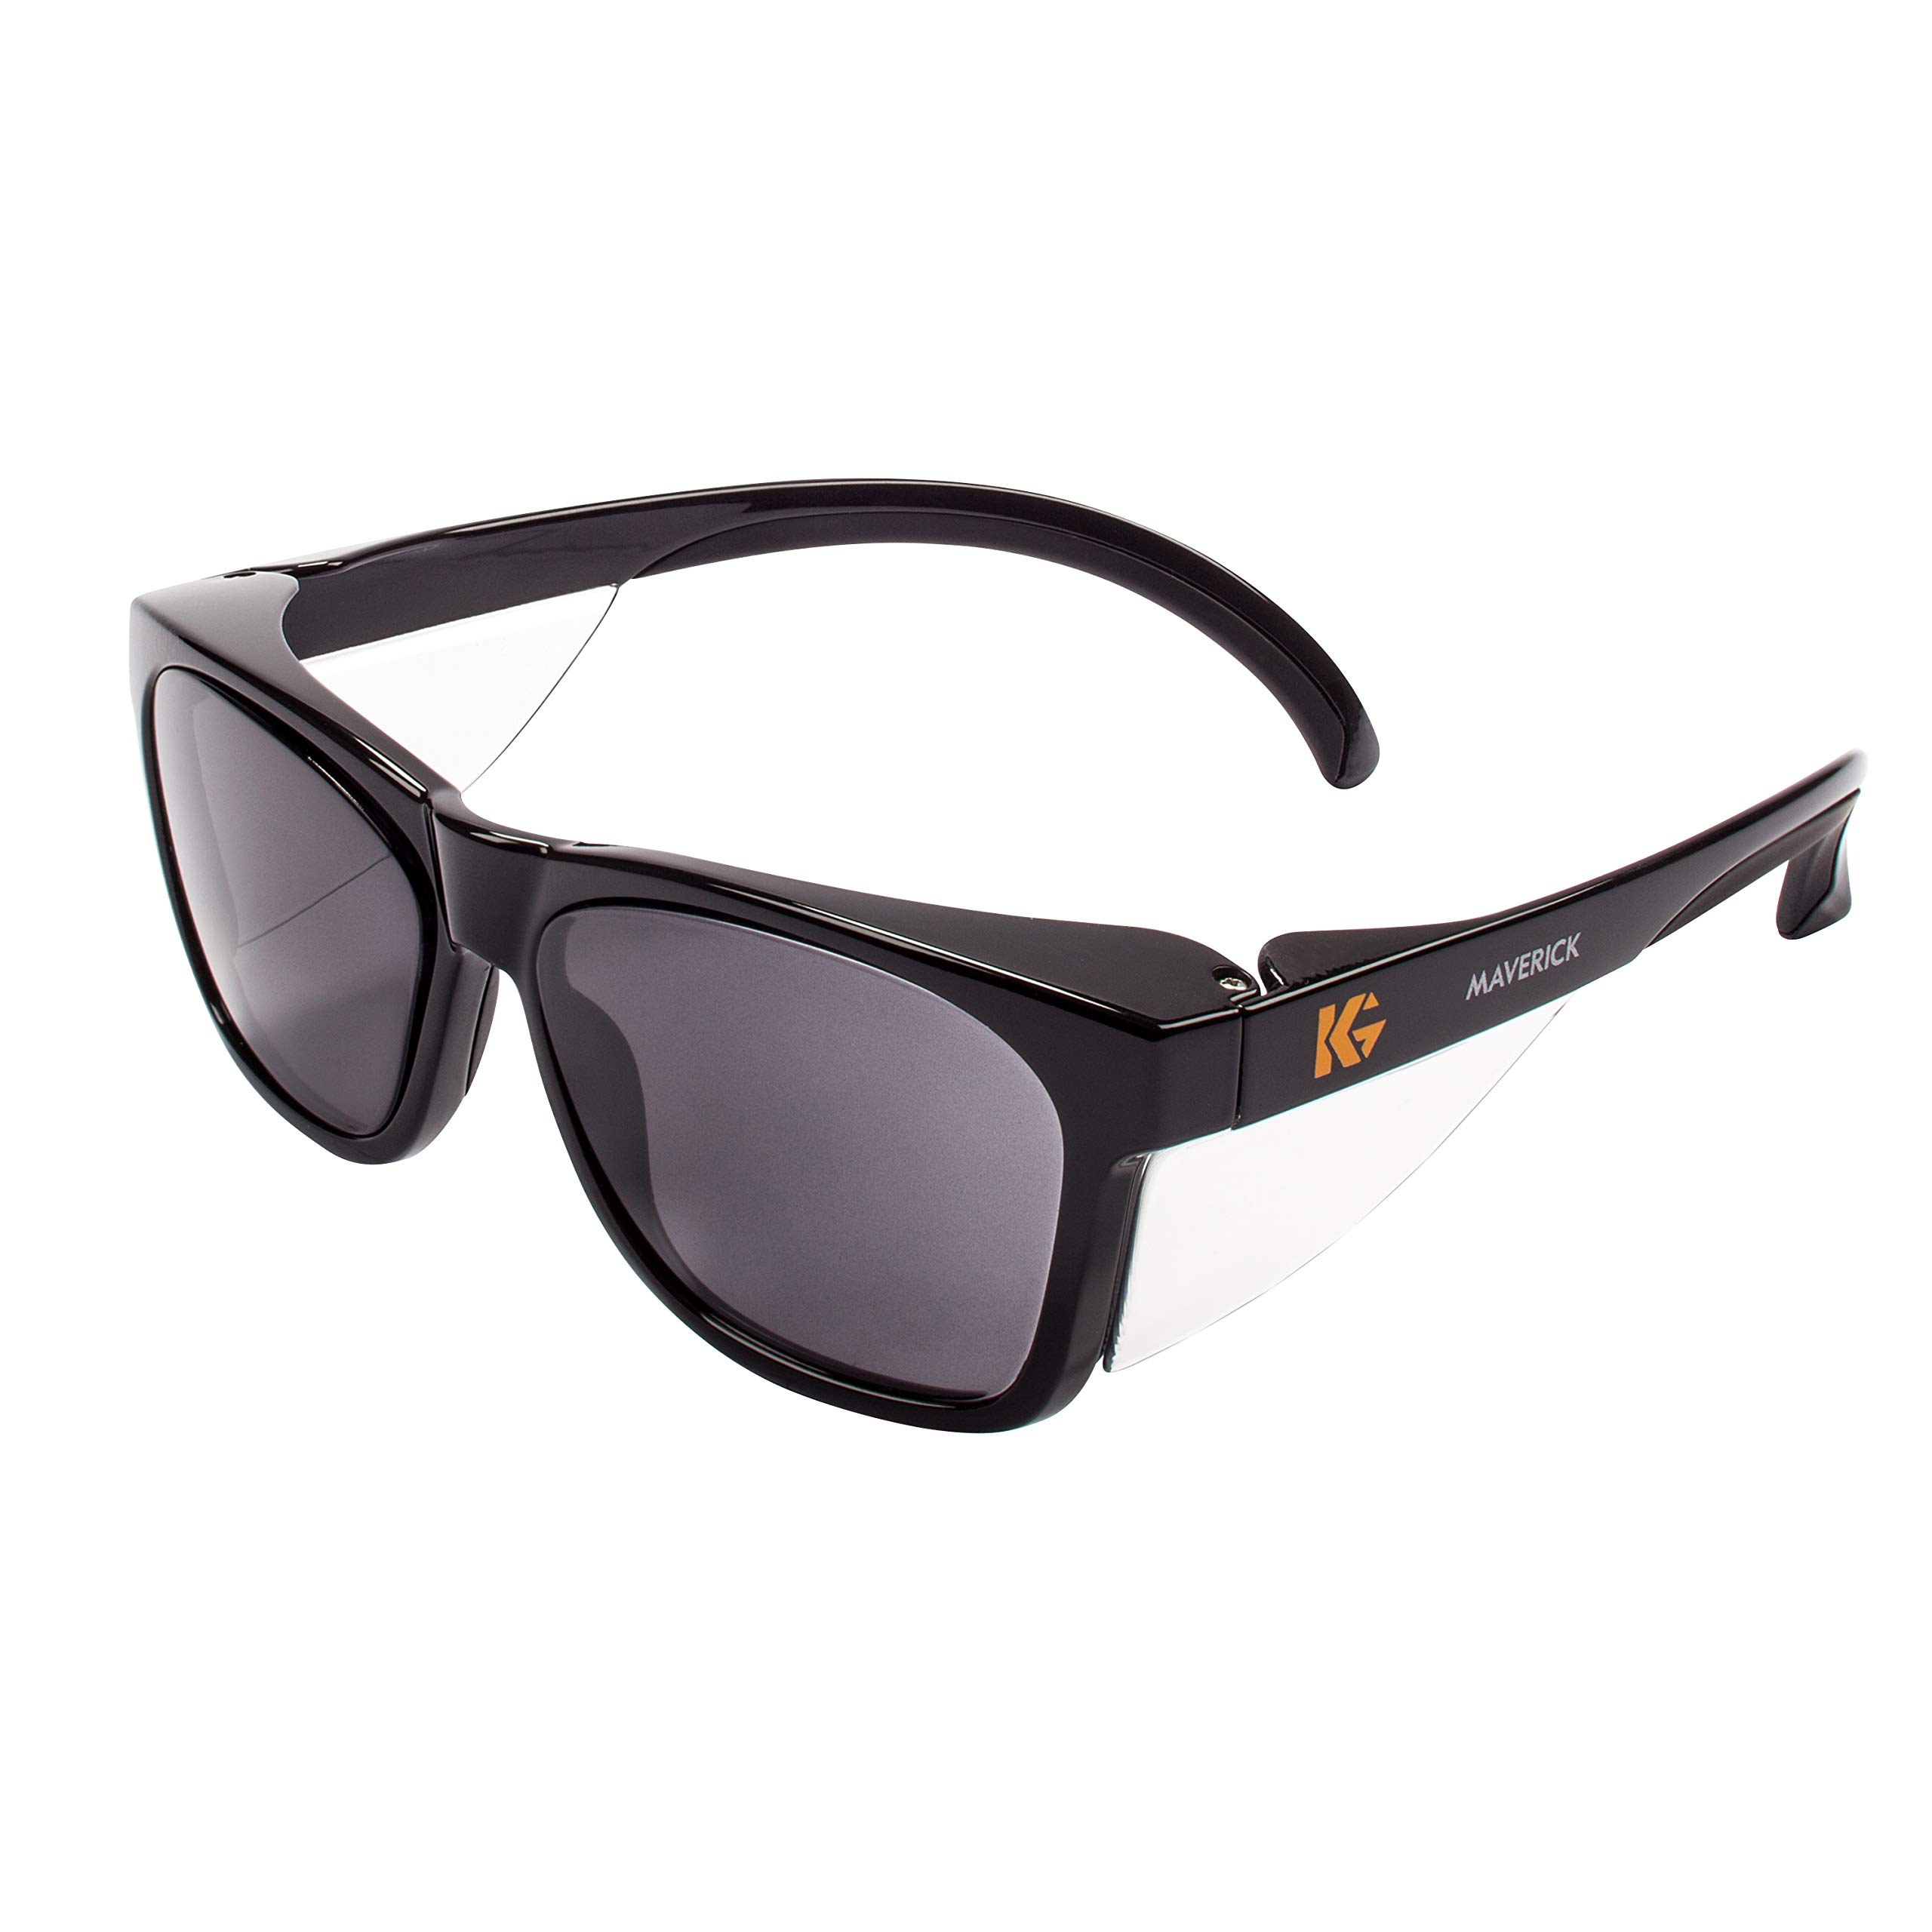 Kleenguard 49311 Maverick Safety Glasses, Black (Pack of 12)